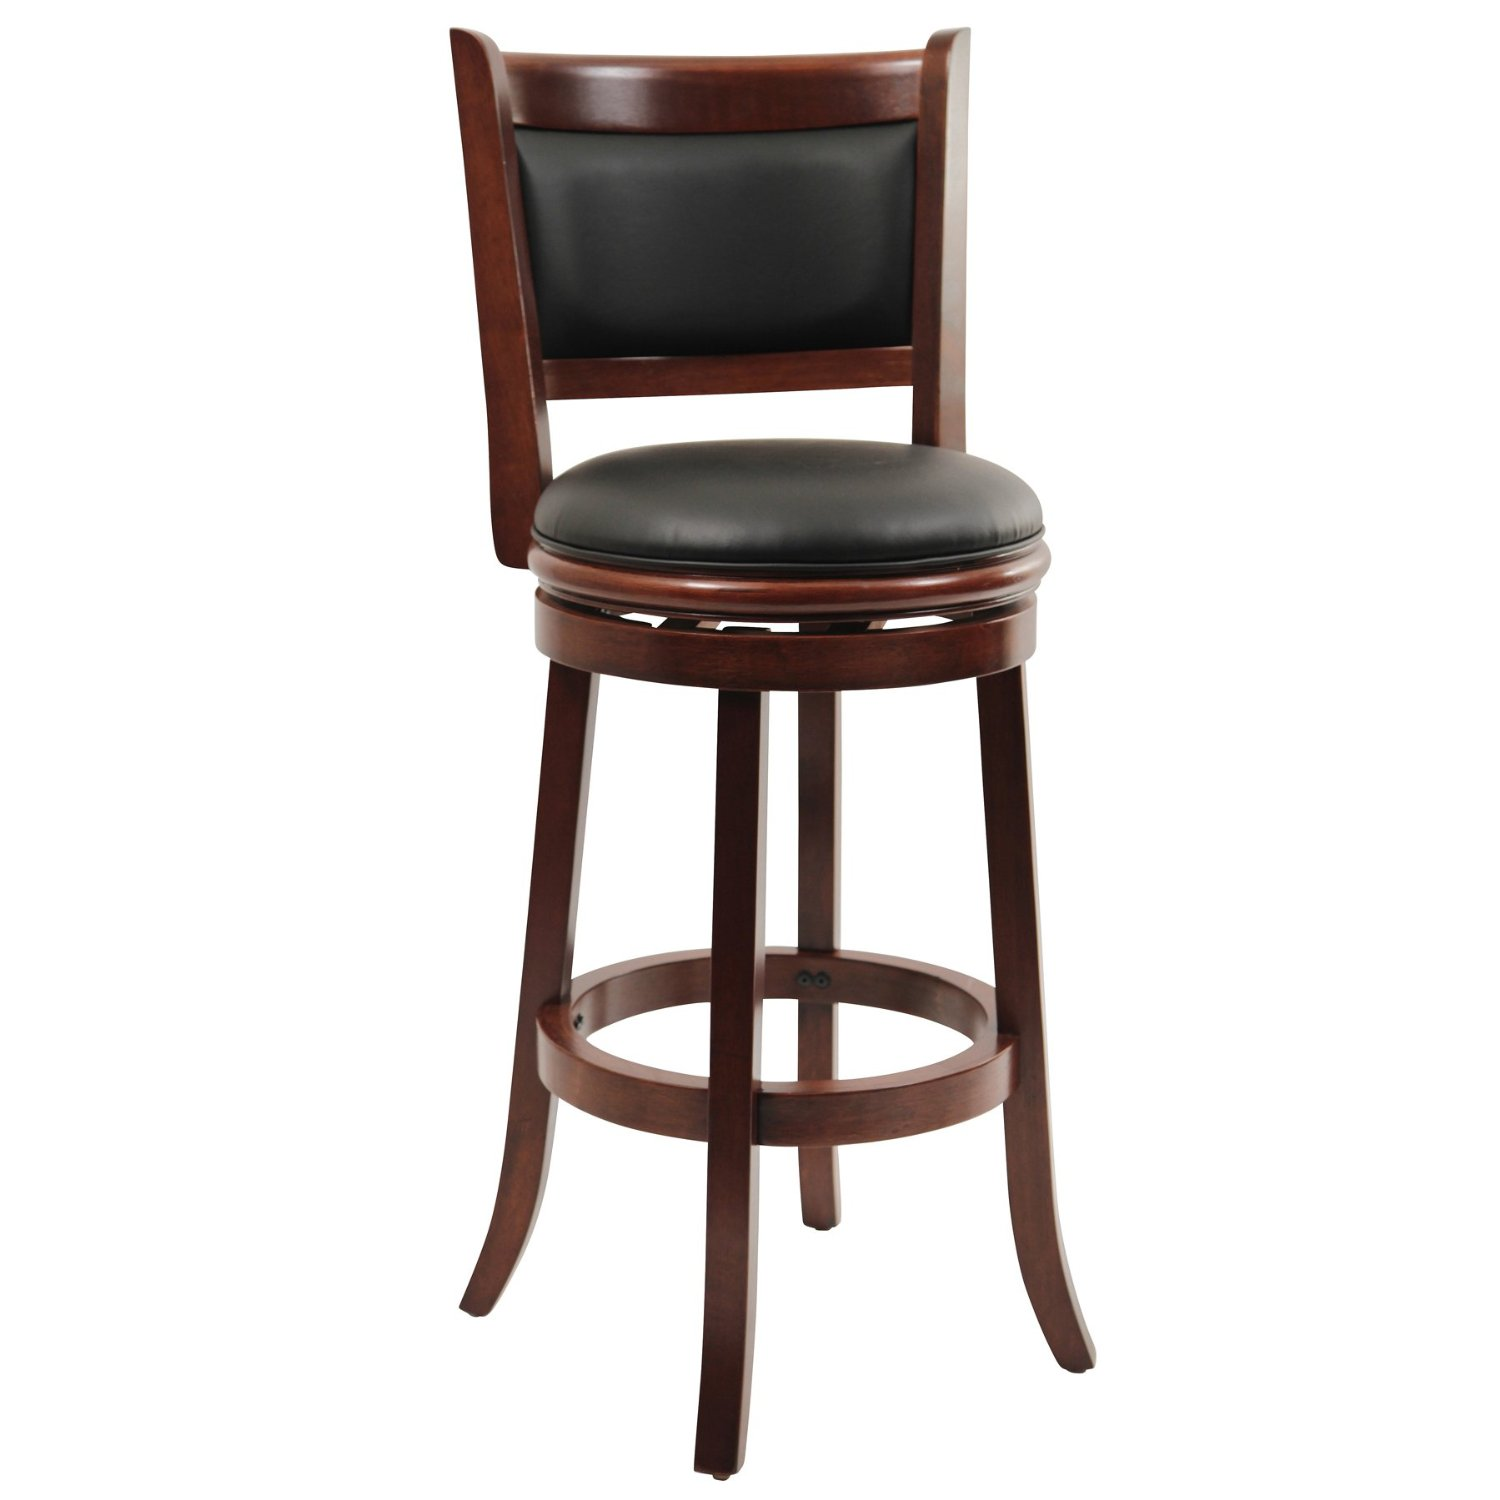 Swivel Stool (Image 5 of 10)